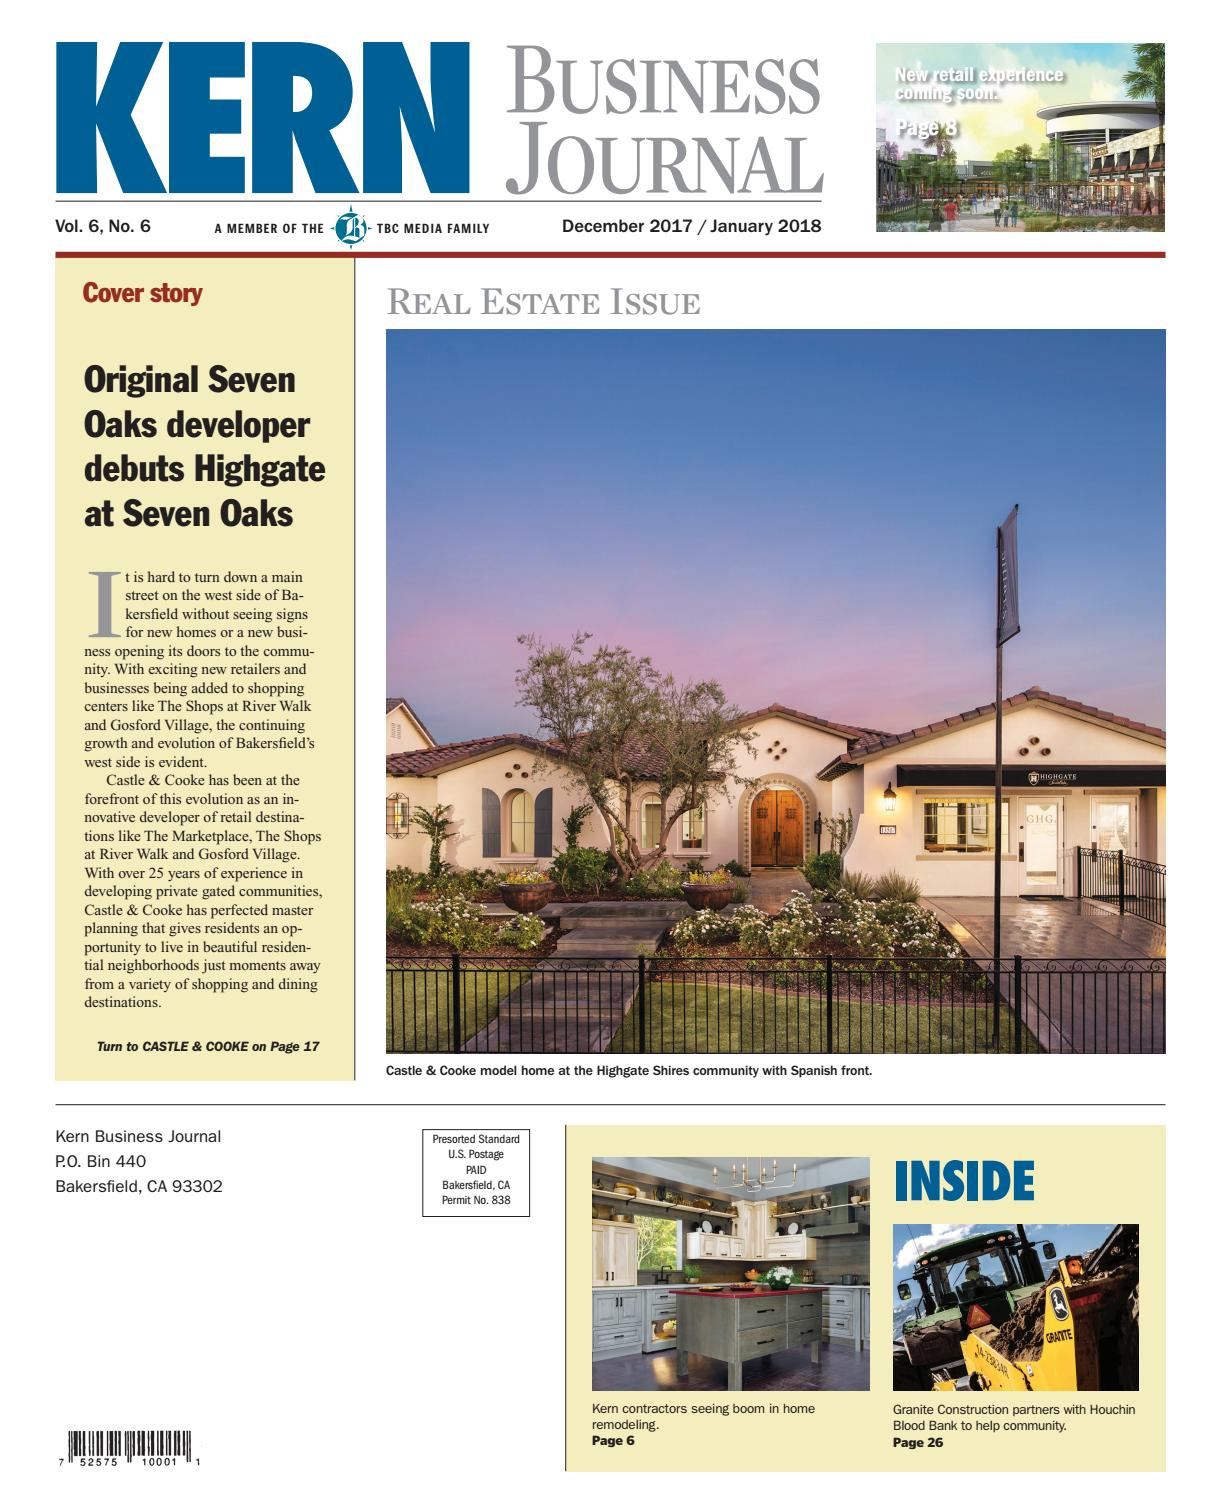 Kern business journal dec 2017jan 2018 by tbc media specialty kern business journal dec 2017jan 2018 by tbc media specialty publications issuu malvernweather Images